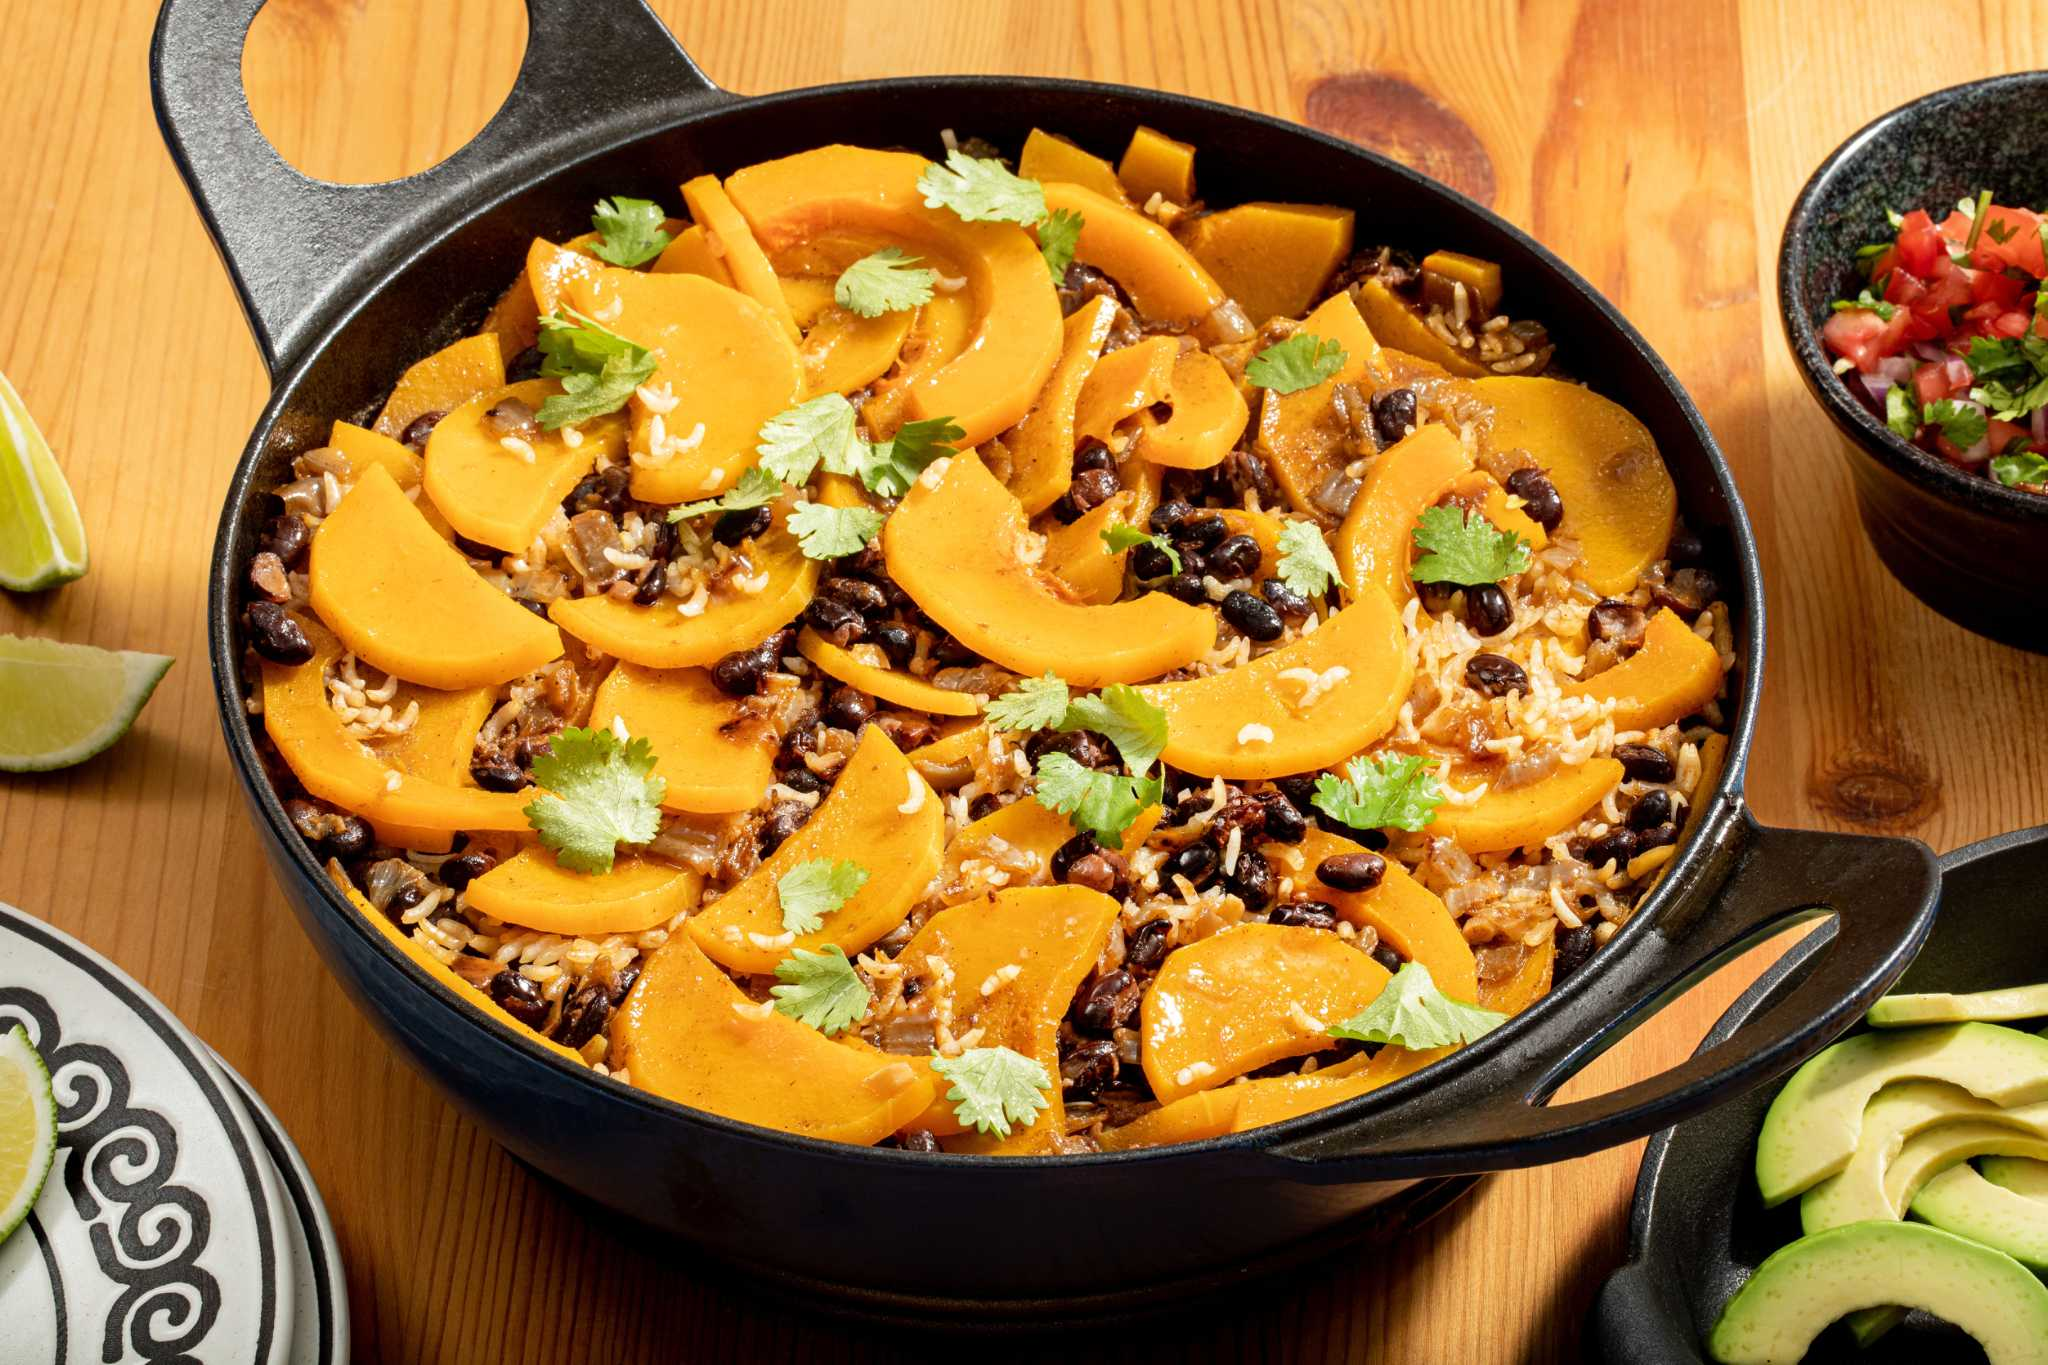 This one-pot pumpkin, black beans and rice recipe makes cleanup a breeze